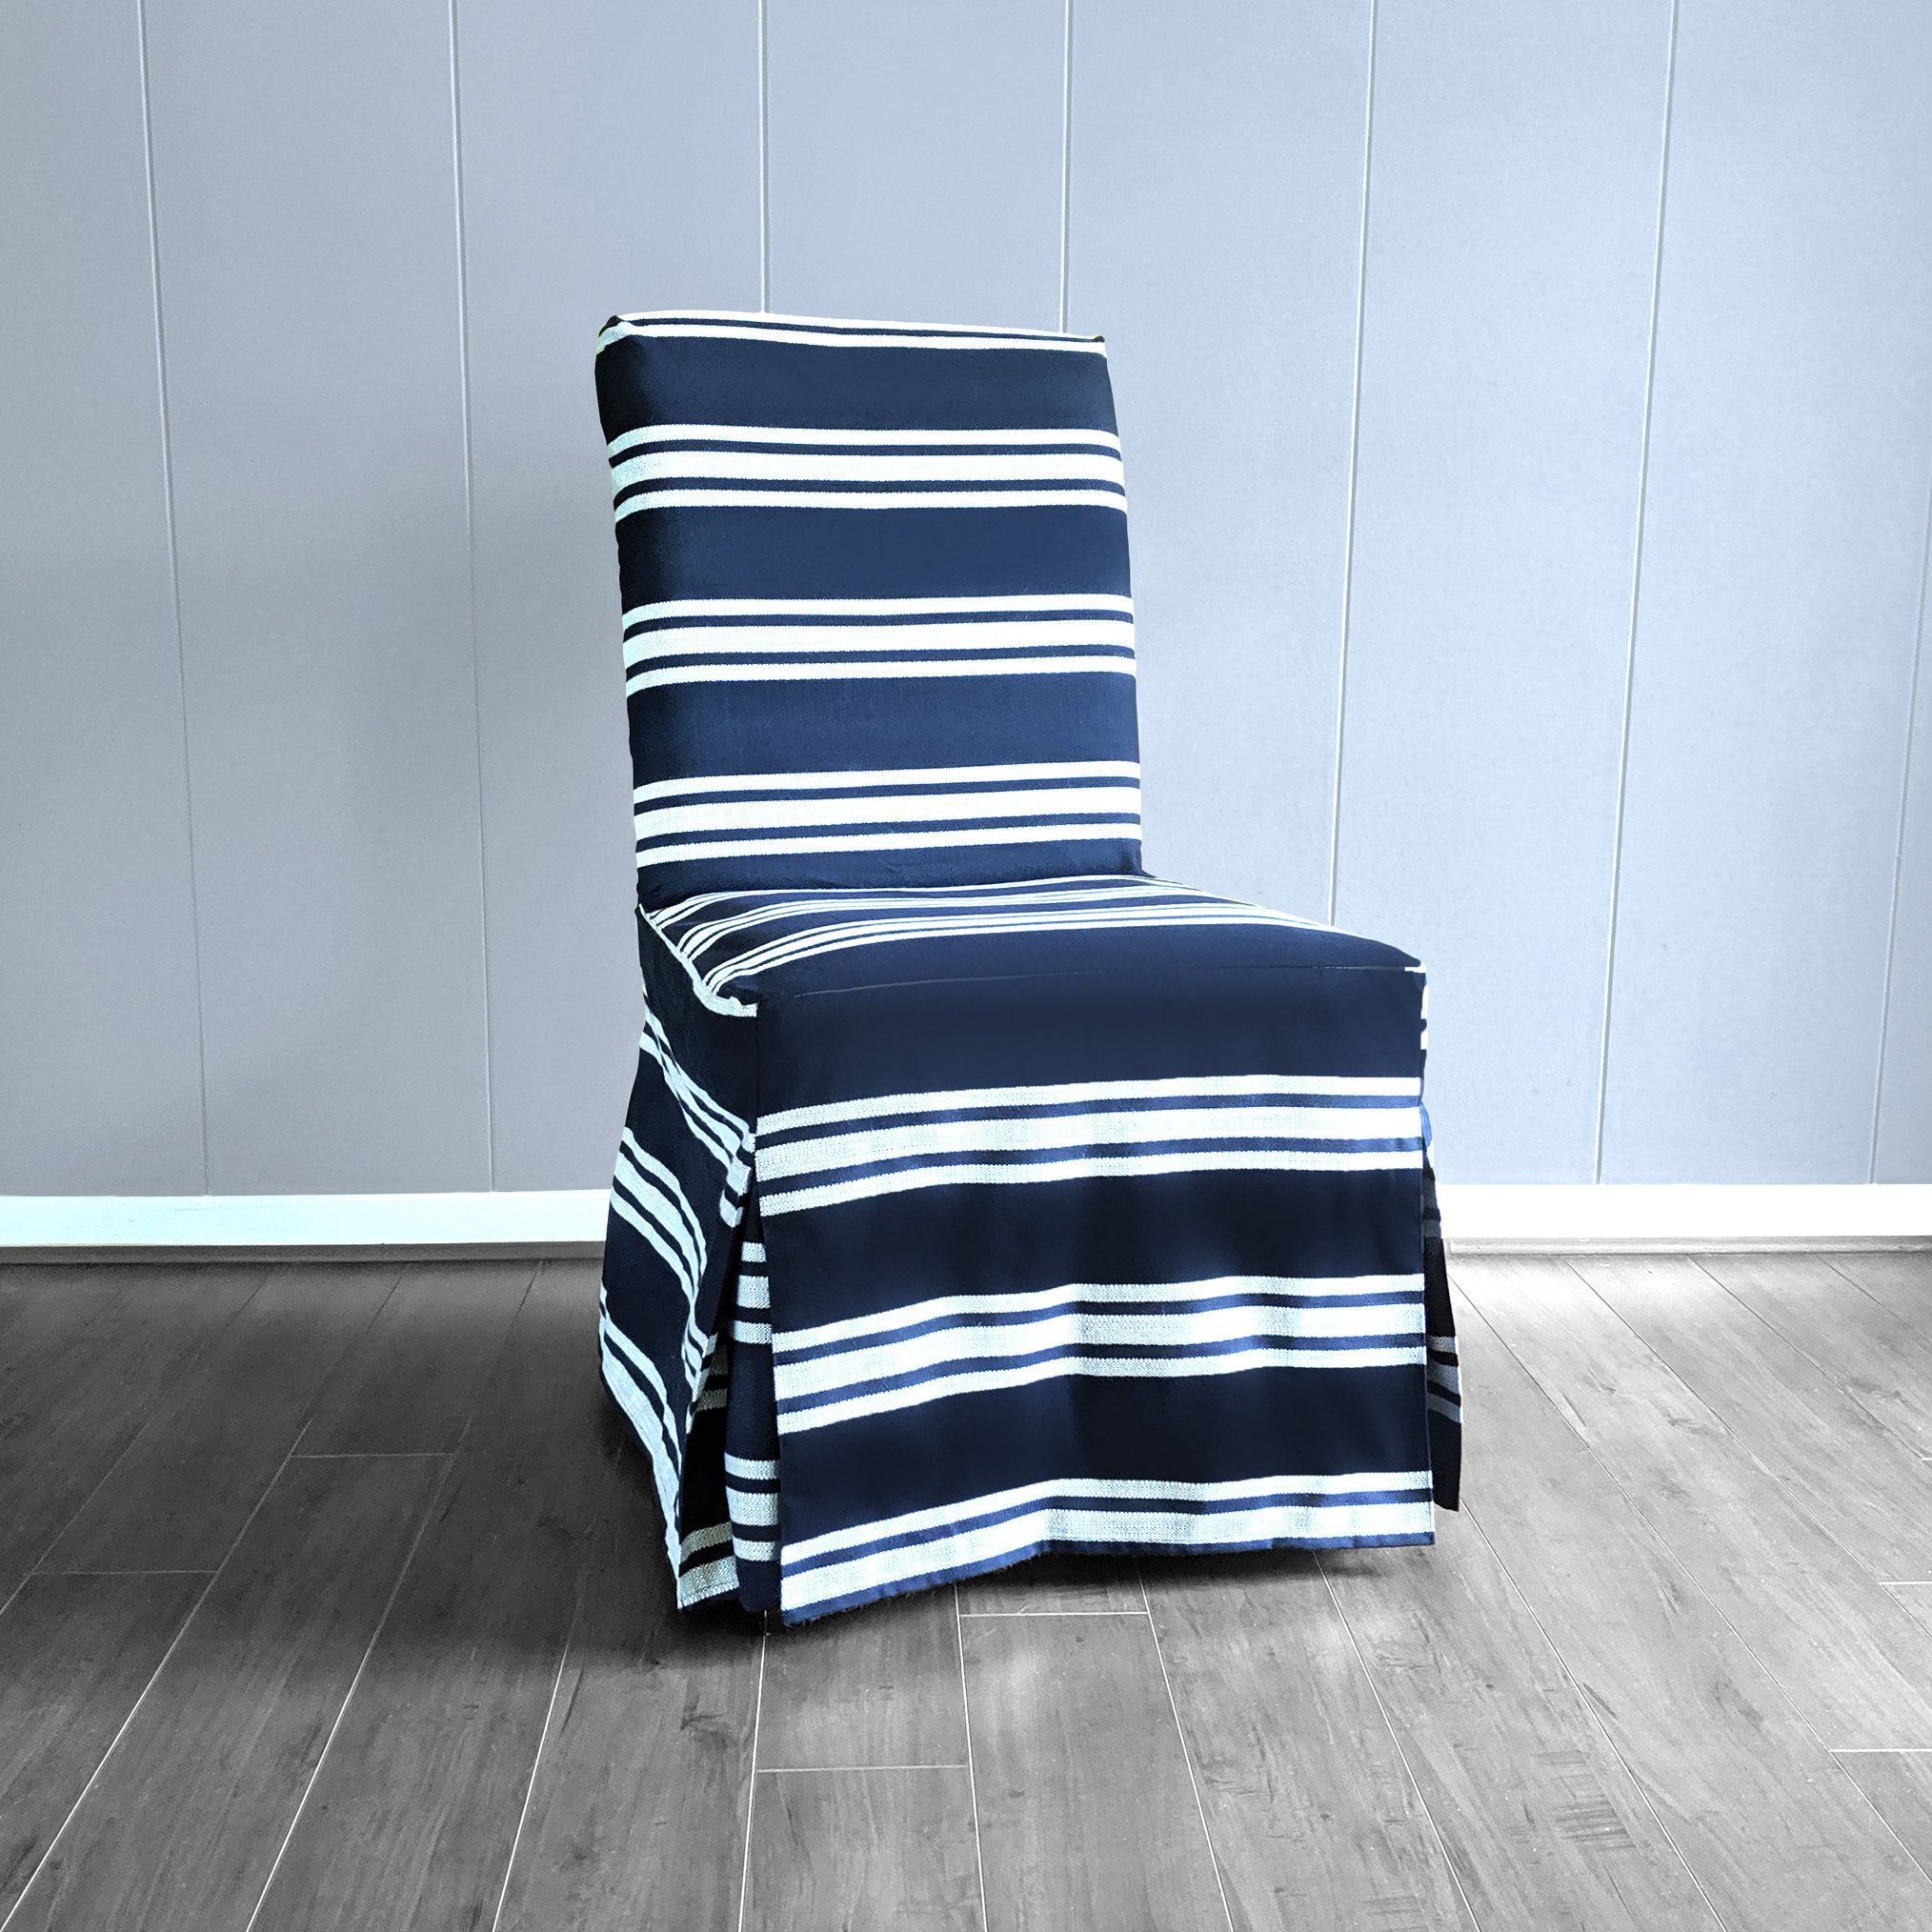 SUNBRELLA Navy White Stripes, IKEA HENRIKSDAL Dining Chair